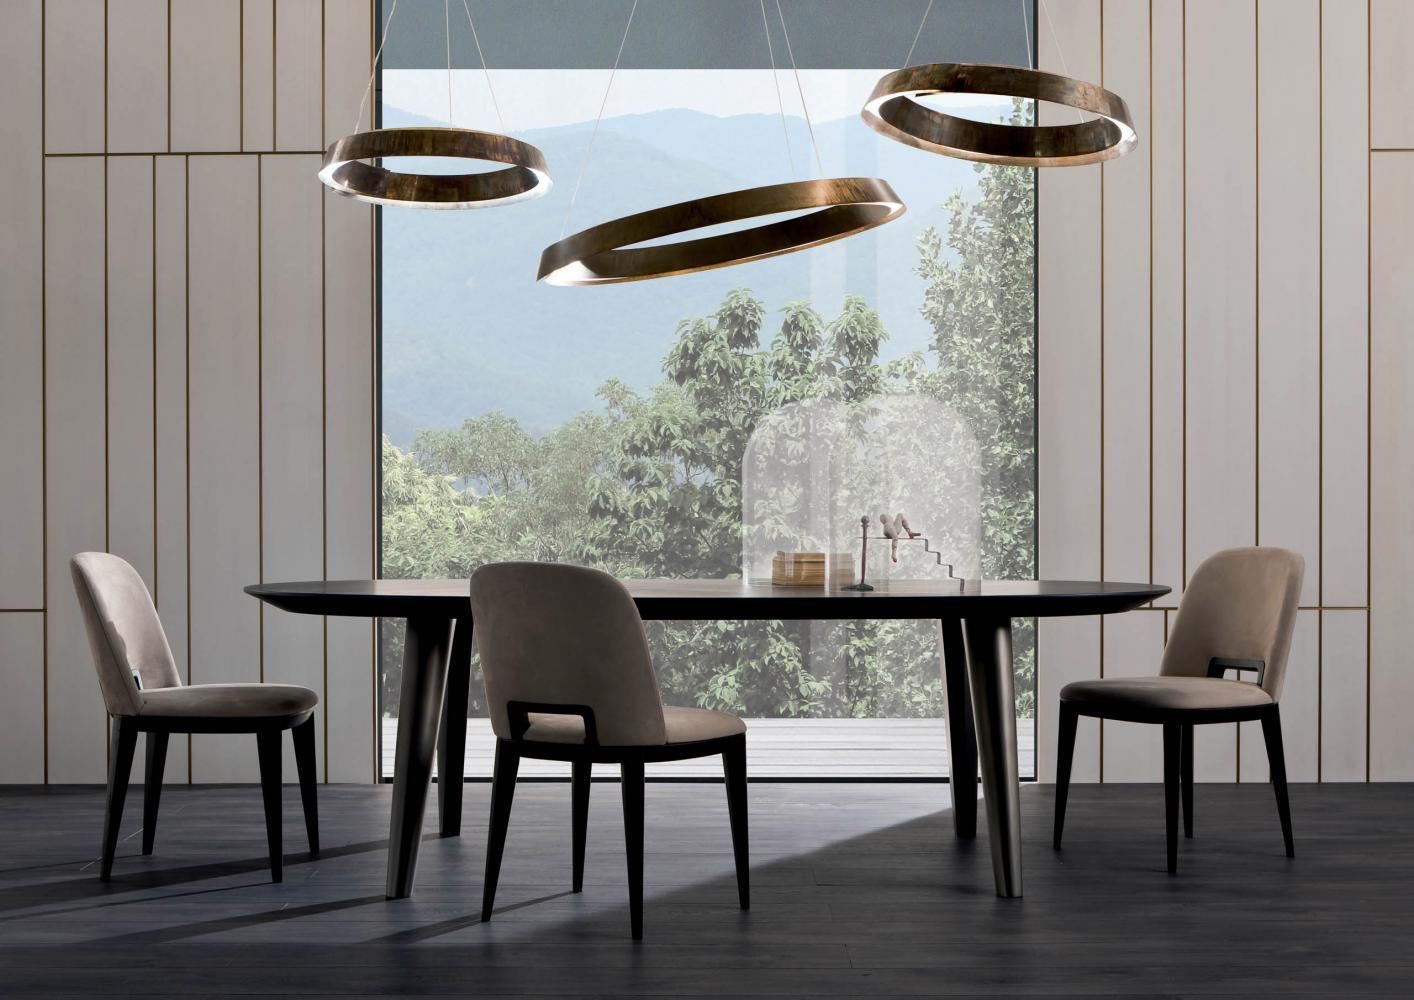 An handcrafted suspended round lighting collection made in Italy